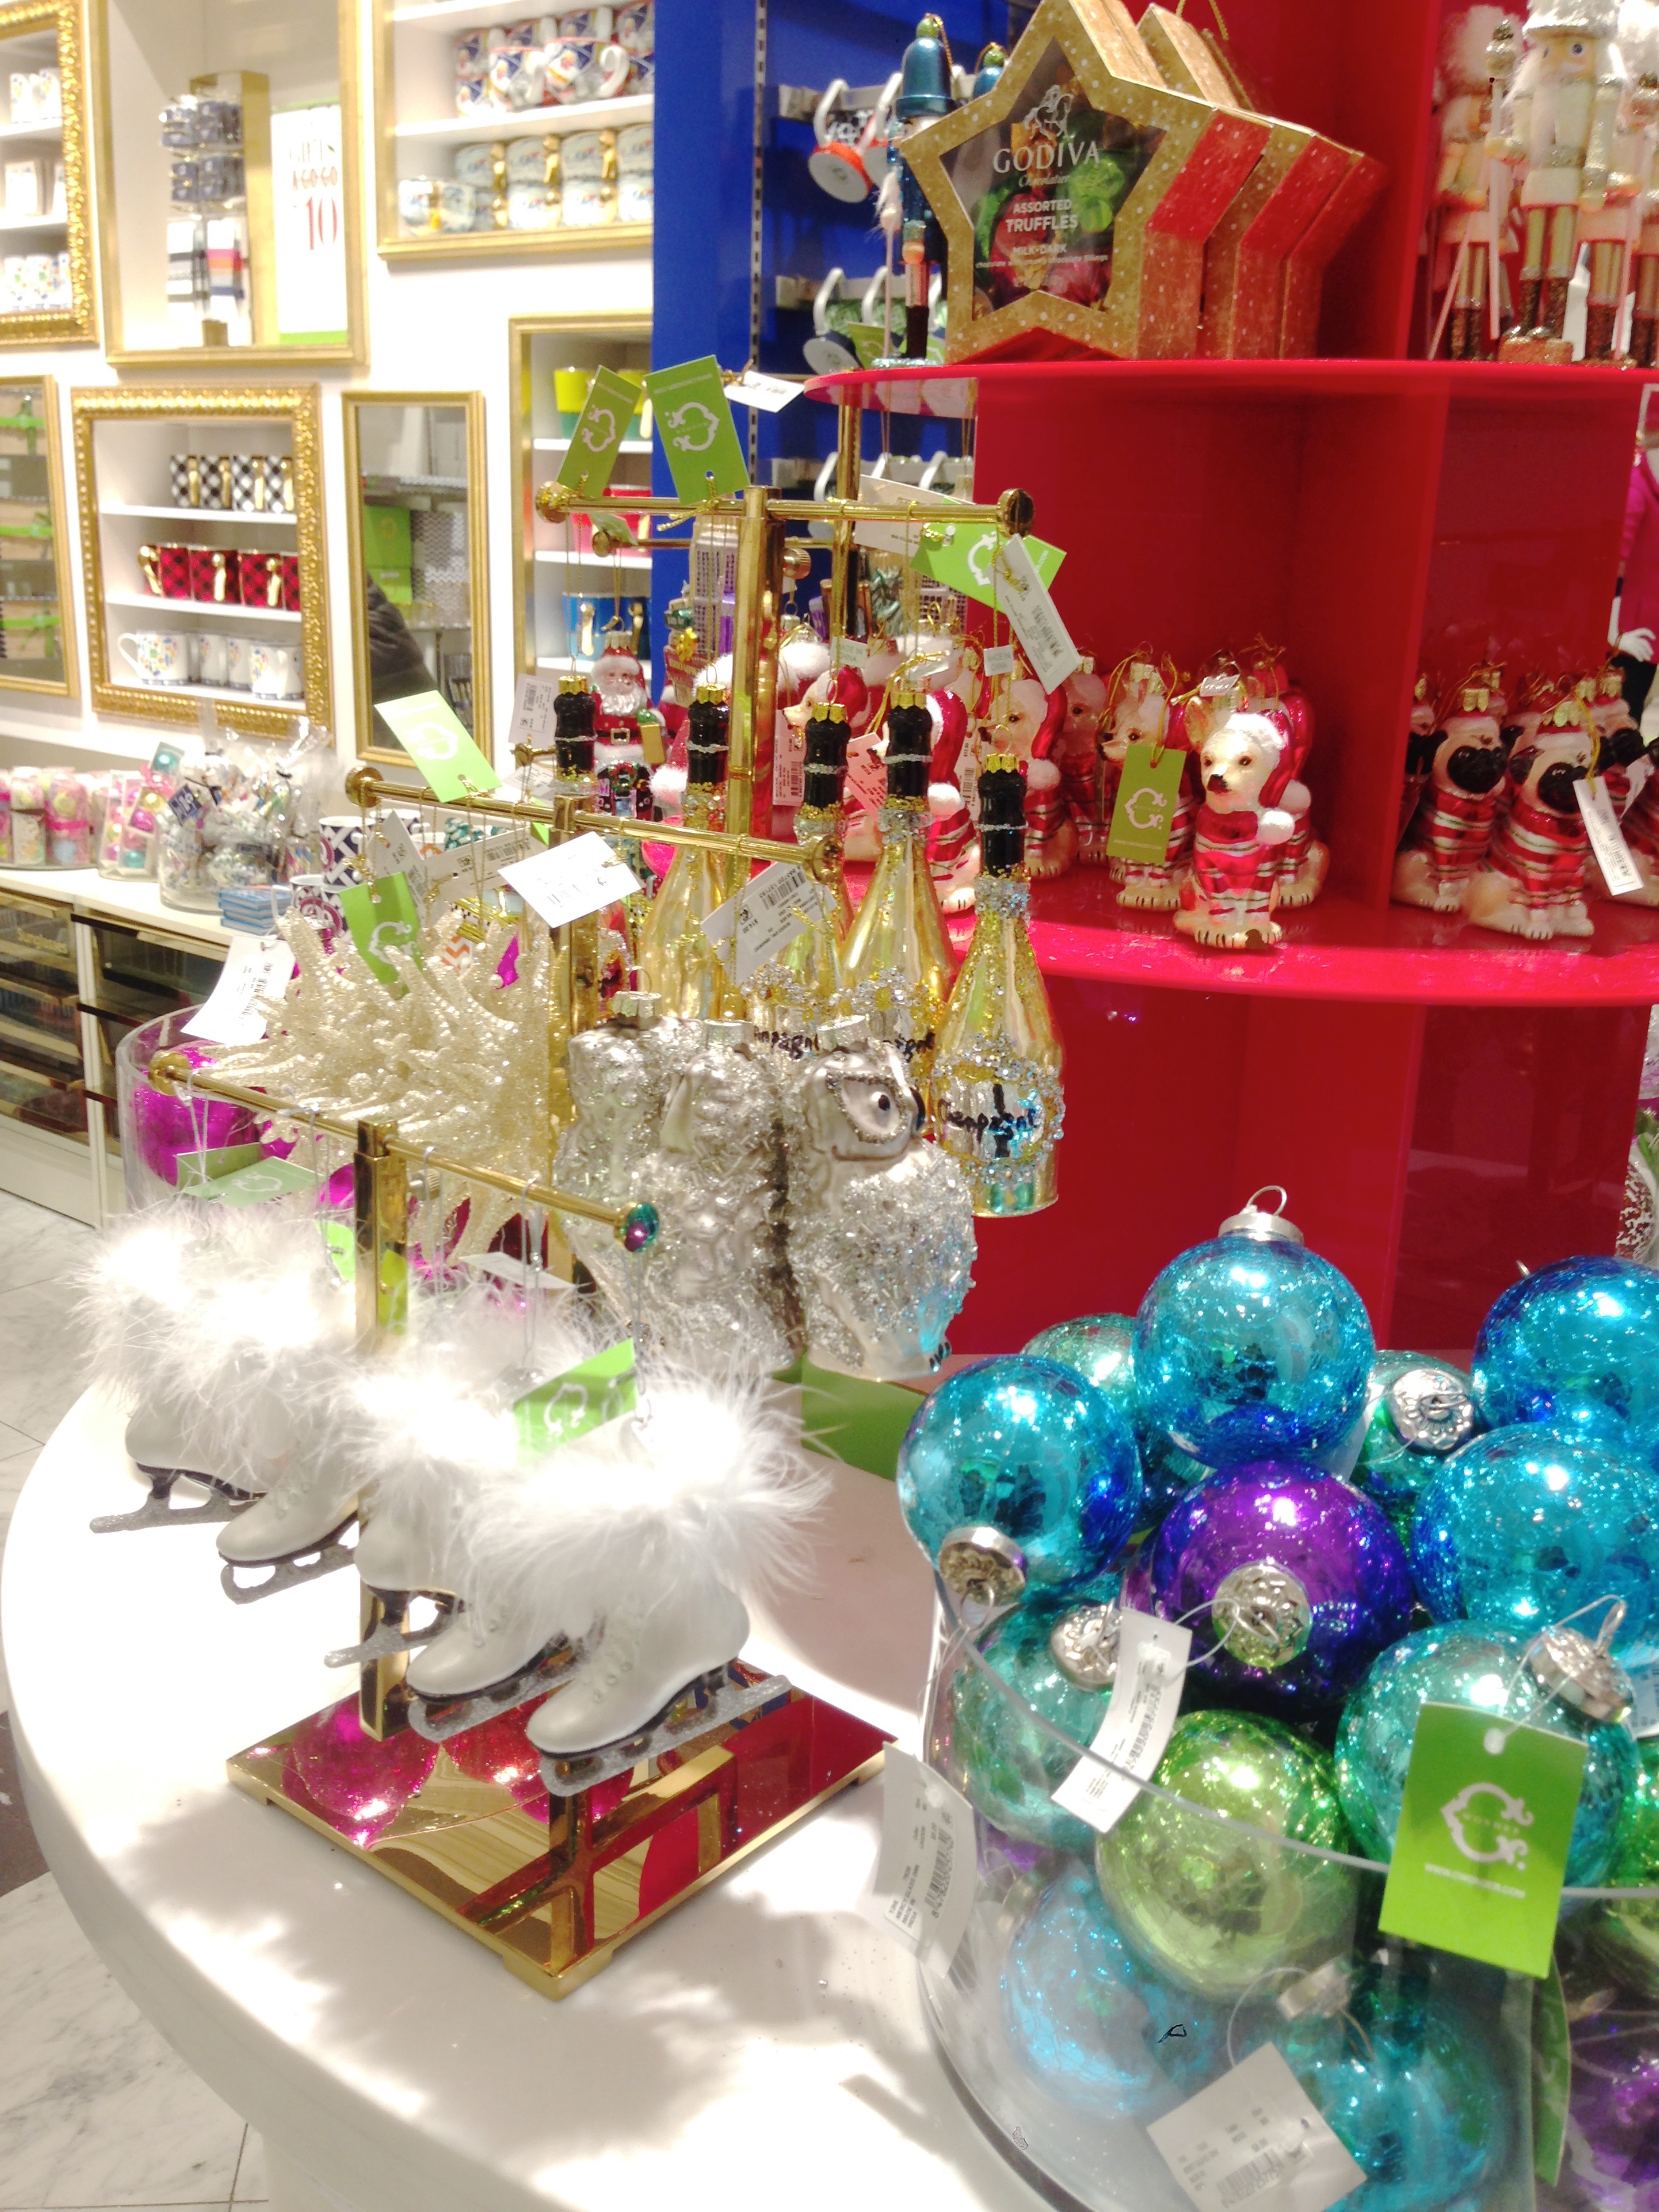 The ornaments- get them while you can, they're a great deal!